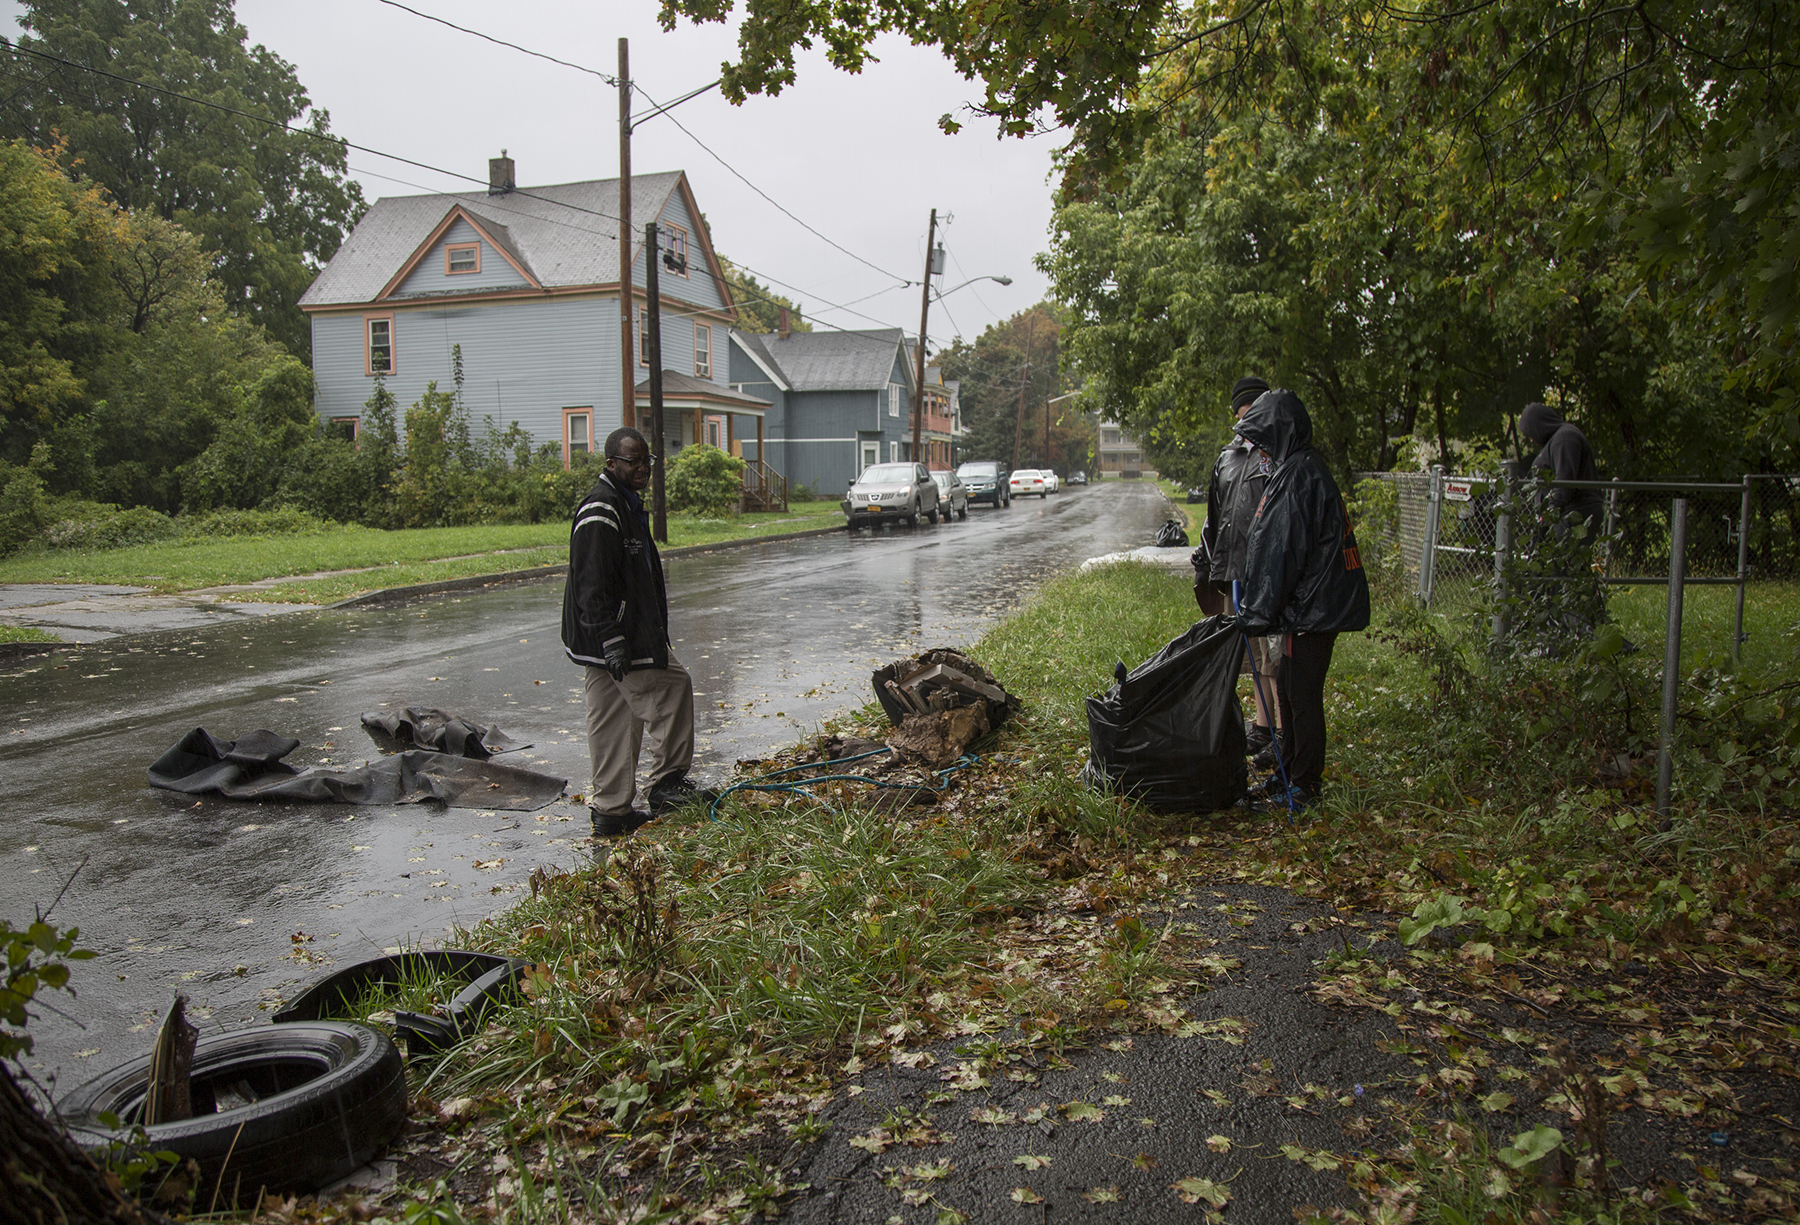 Arlene Brodbek, Pete Nicolini and Jerome Sanders work to clean up an area that has become a dumping site for tires, old TVs, rugs and more during the South Side cleanup organized by Believe in Syracuse on Oct. 8. | Aubrey Moore, Staff Photo